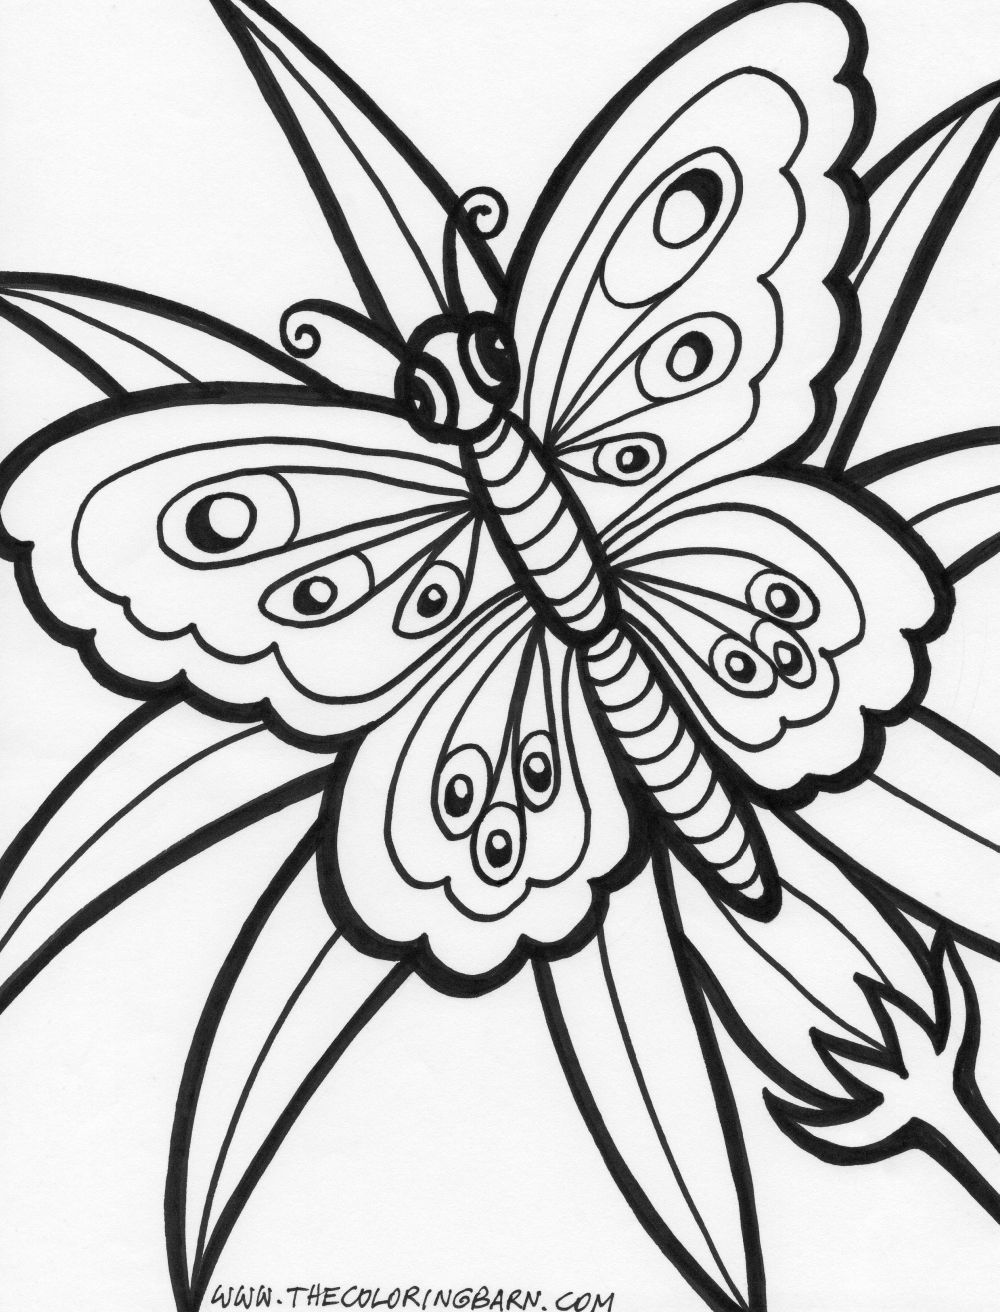 Colouring in sheets of flowers - Free Adult Coloring Pages